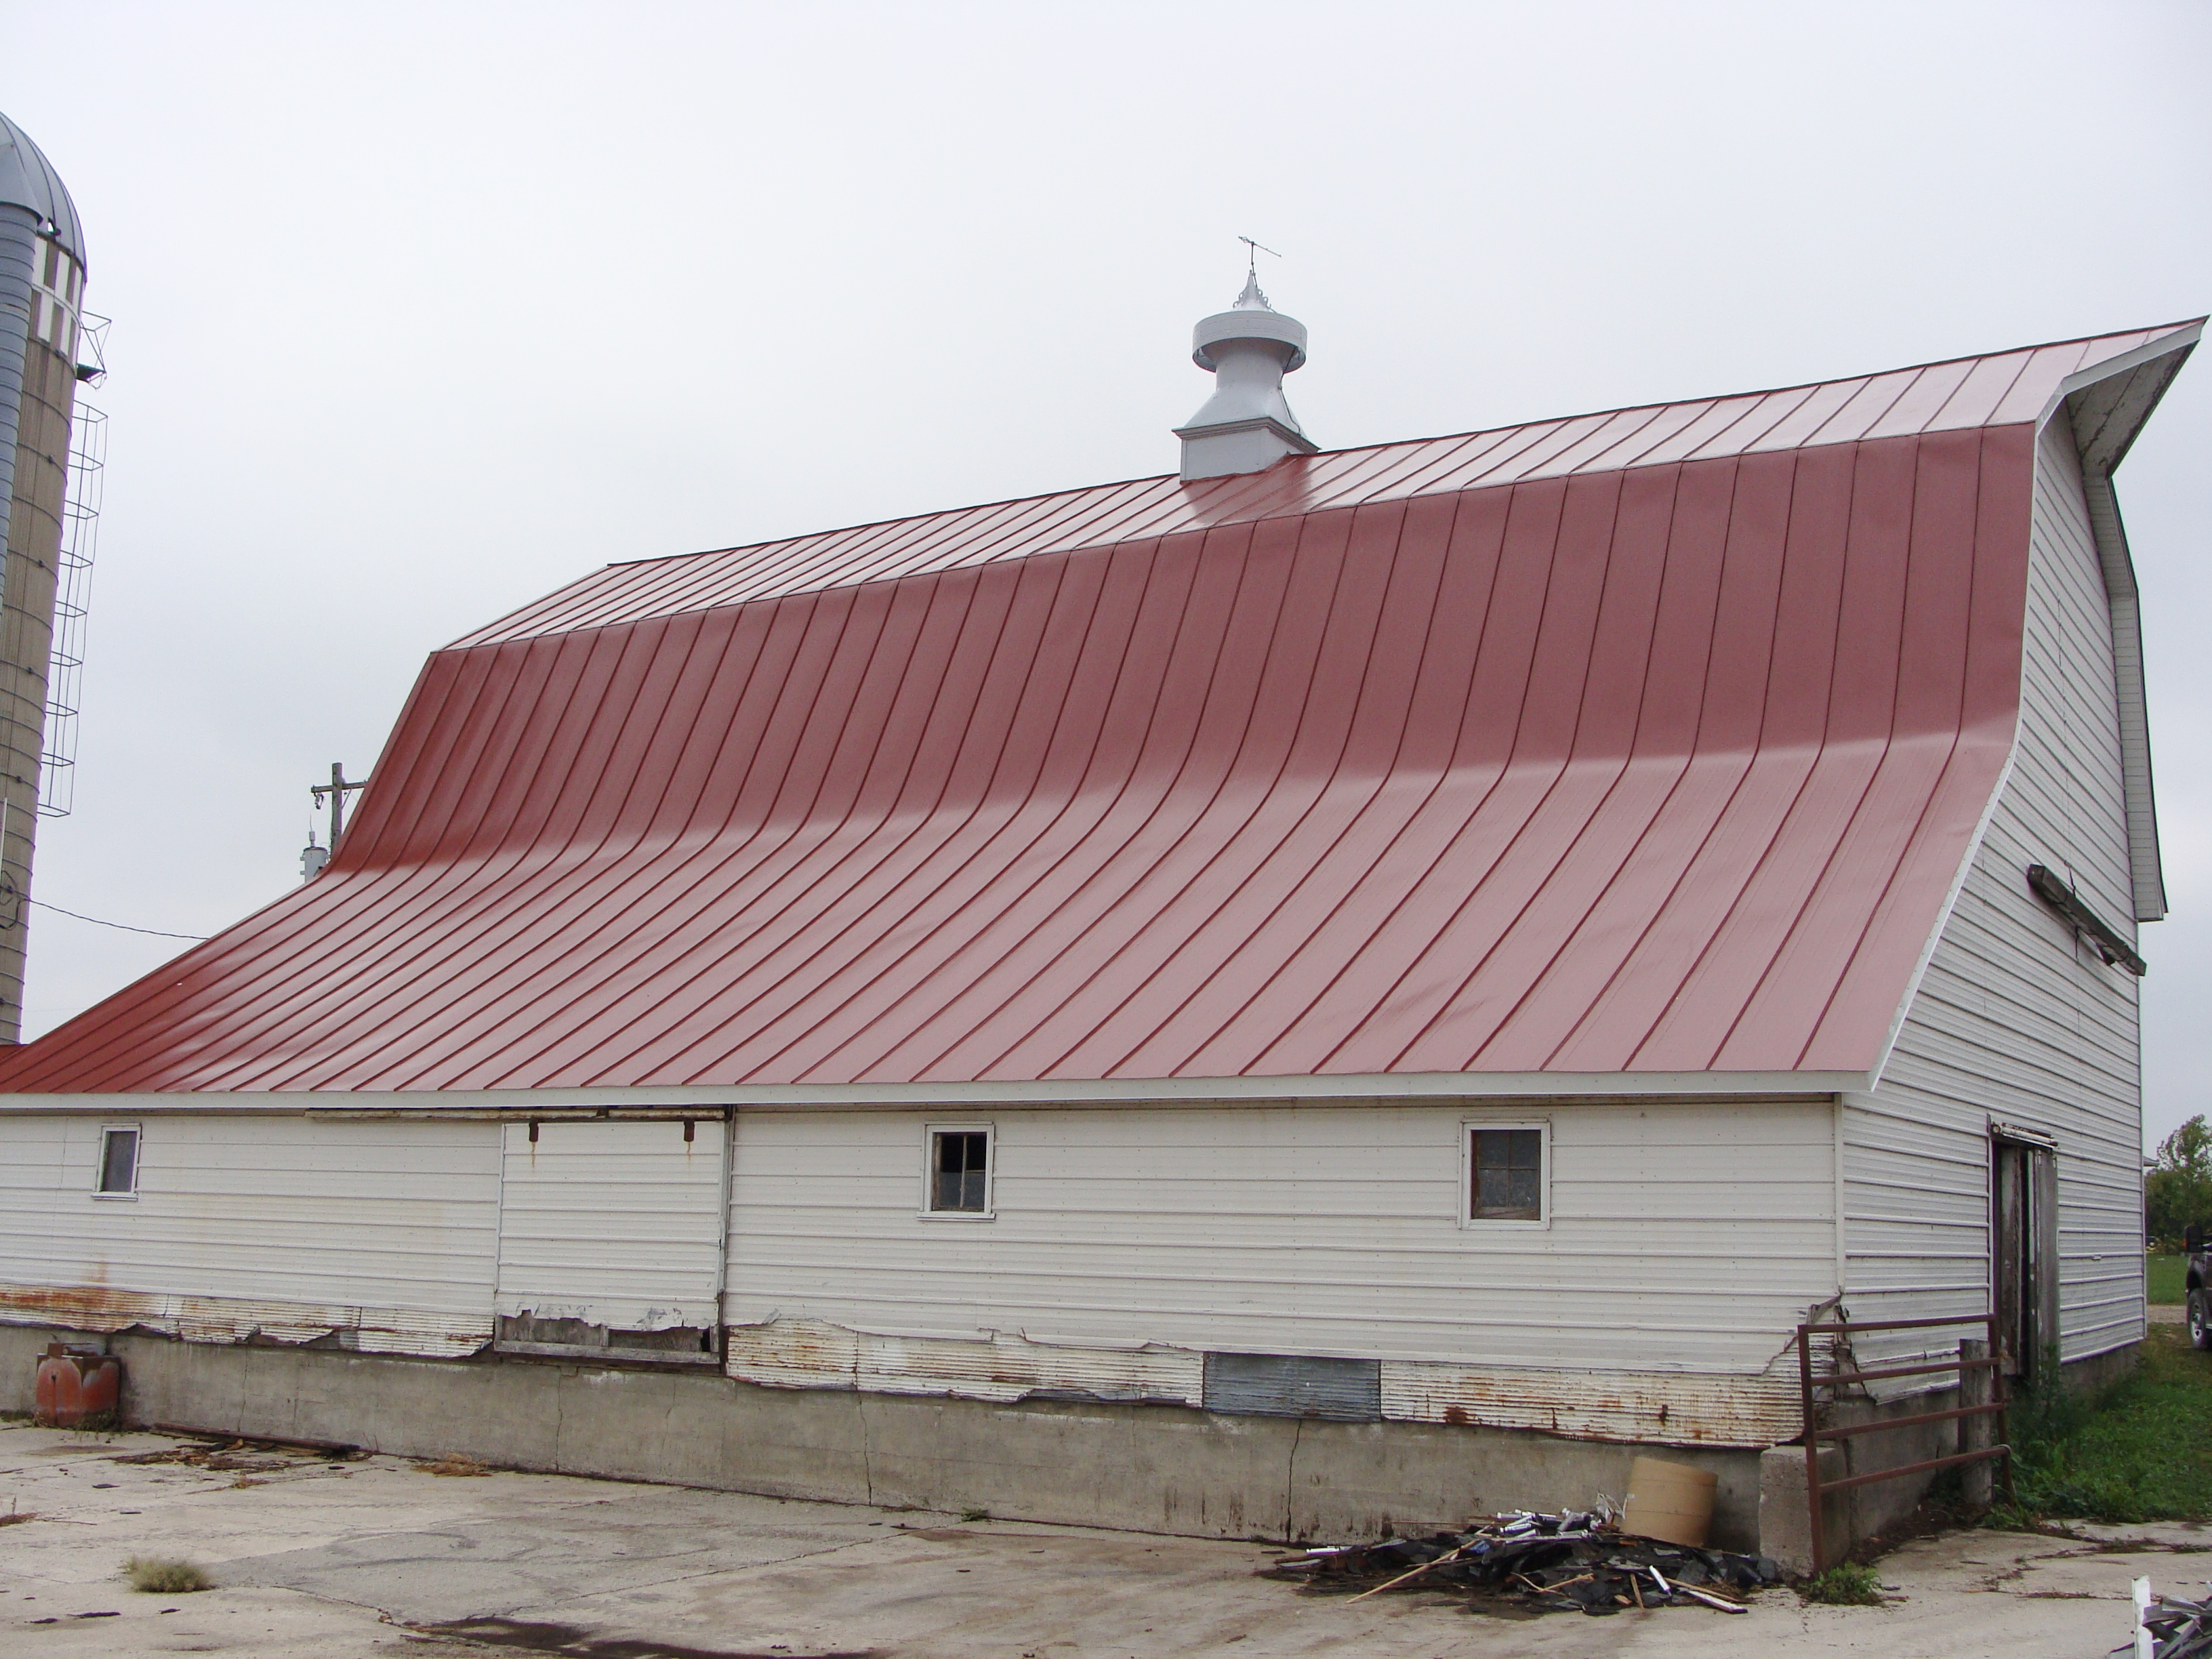 hip barn agricultural double lock standing seam sheet metal roofing dark colonial red culpitt wisconsin iowa illinois minnesota north dakota